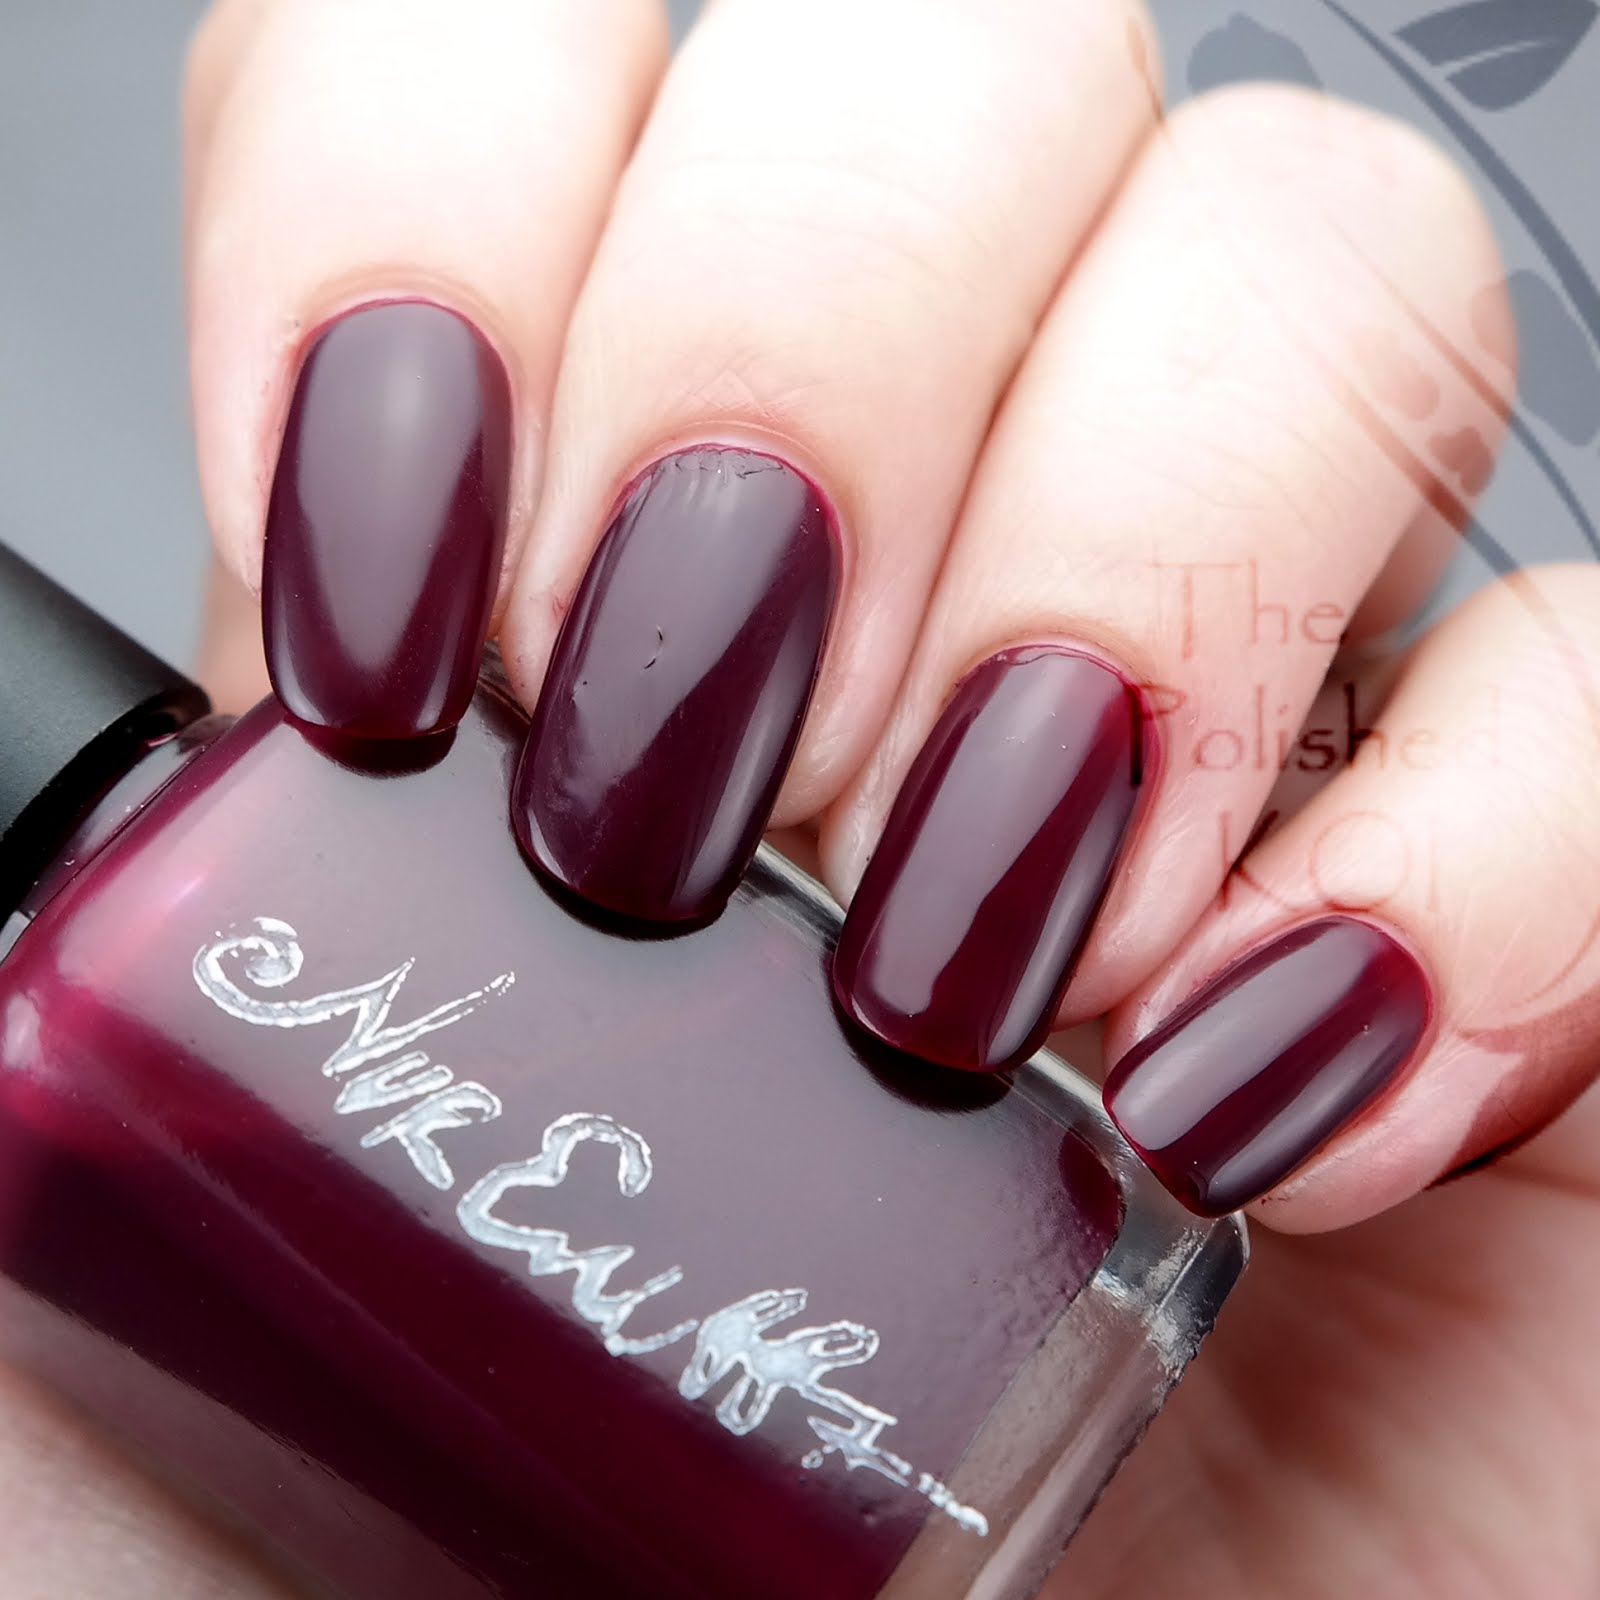 The polished koi swatch art nvr enuff polish berry its squishy looking which i was surprised about its sort of a creamy jelly and builds up in opacity as you add more coats at 2 it still showed my nail prinsesfo Images